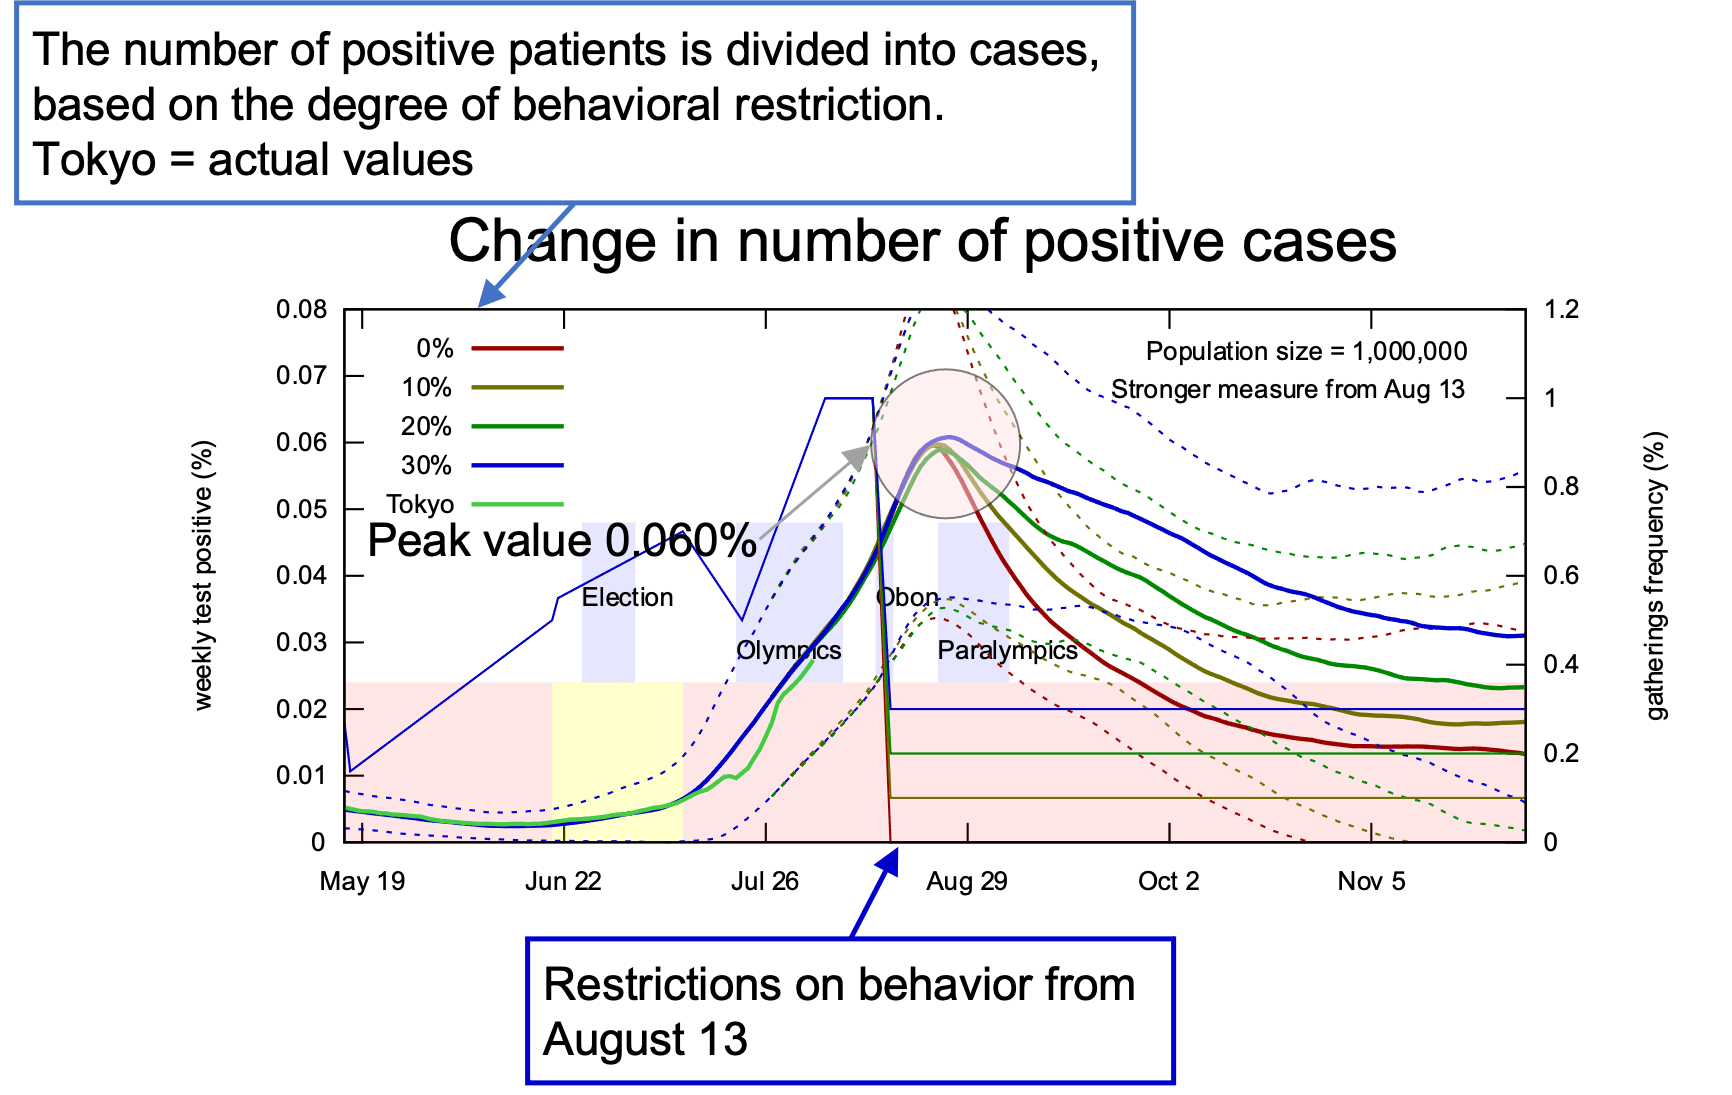 Change in number of positive cases